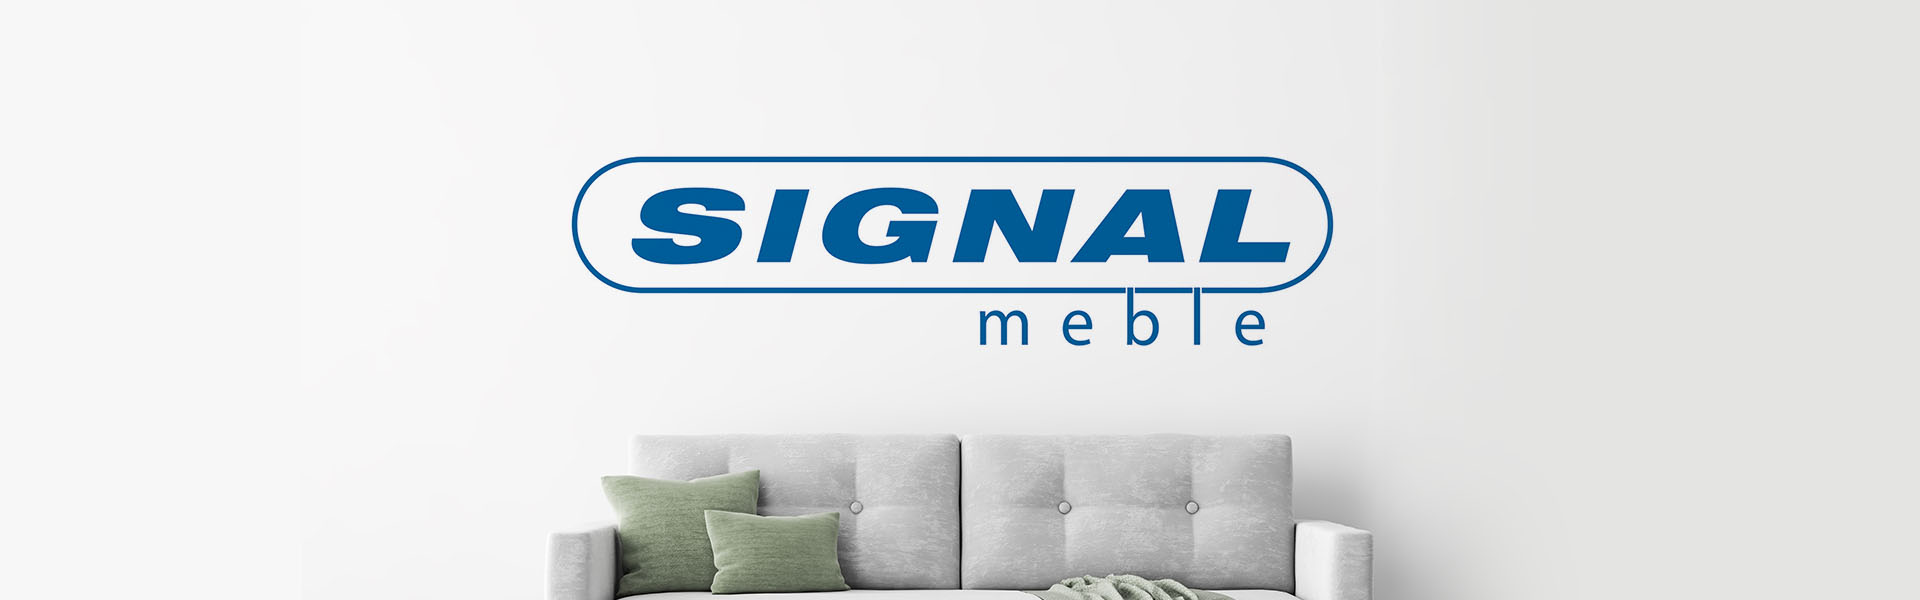 Galds Windsor                             Signal Meble